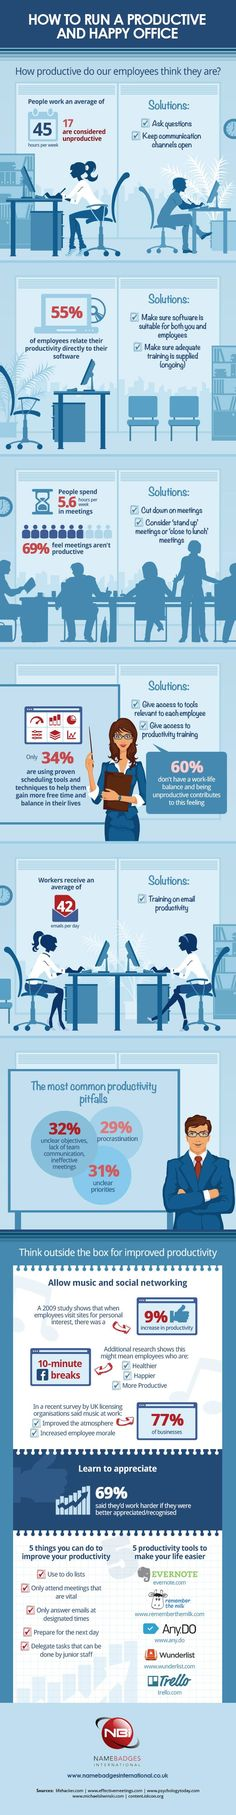 How to Run a Happy and Productive Office. #infographic